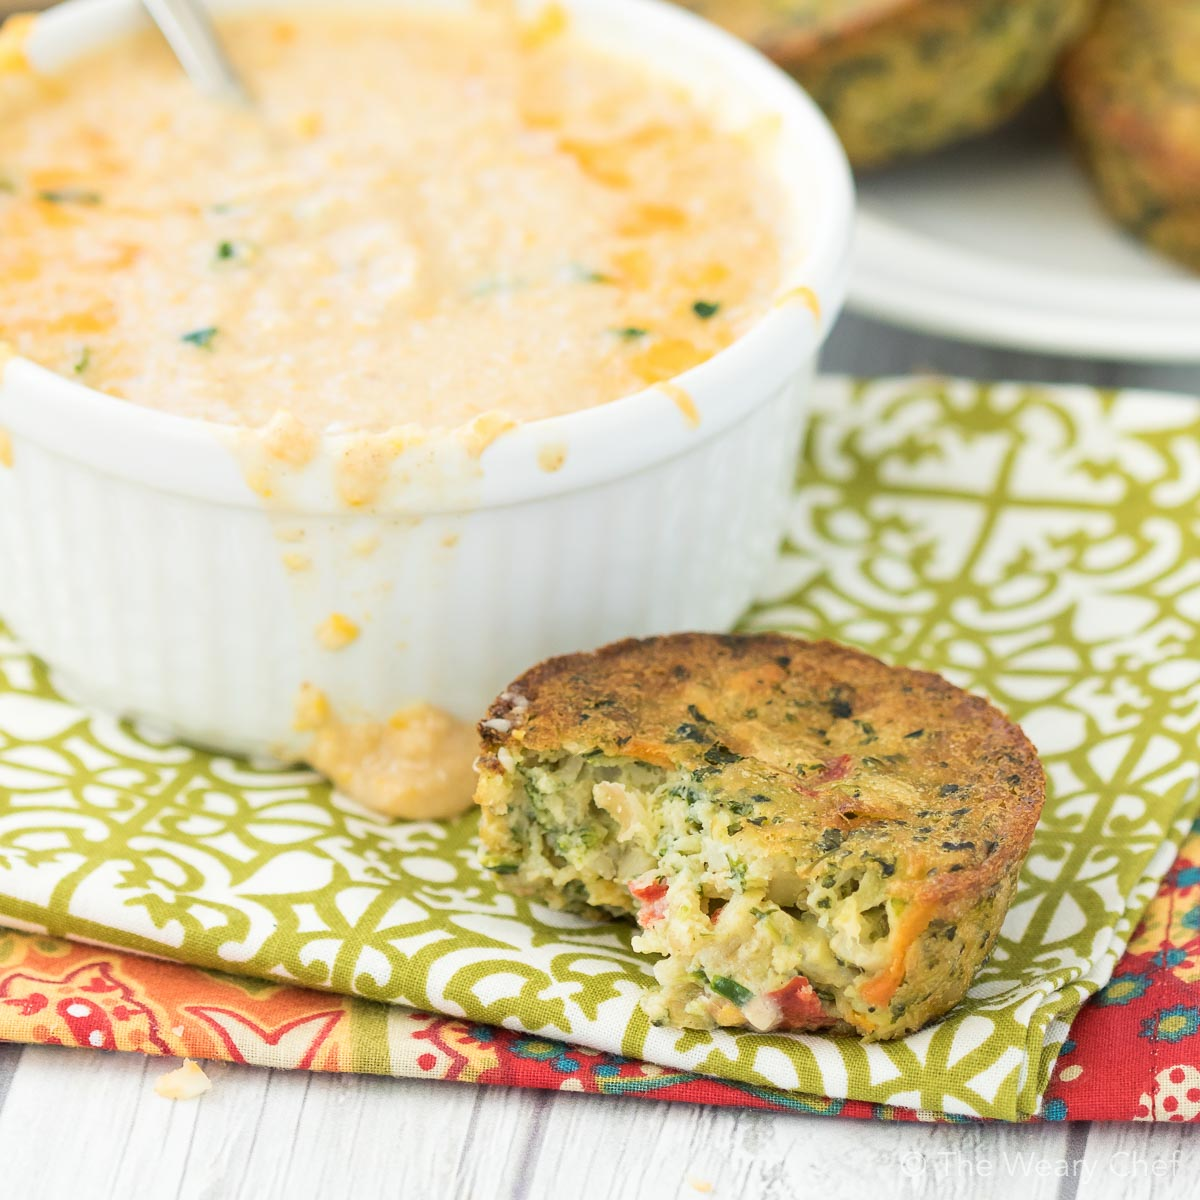 Wholesome and delicious Garden Lites veggie cakes pair perfectly with this easy Vegetarian Corn Chowder recipe!